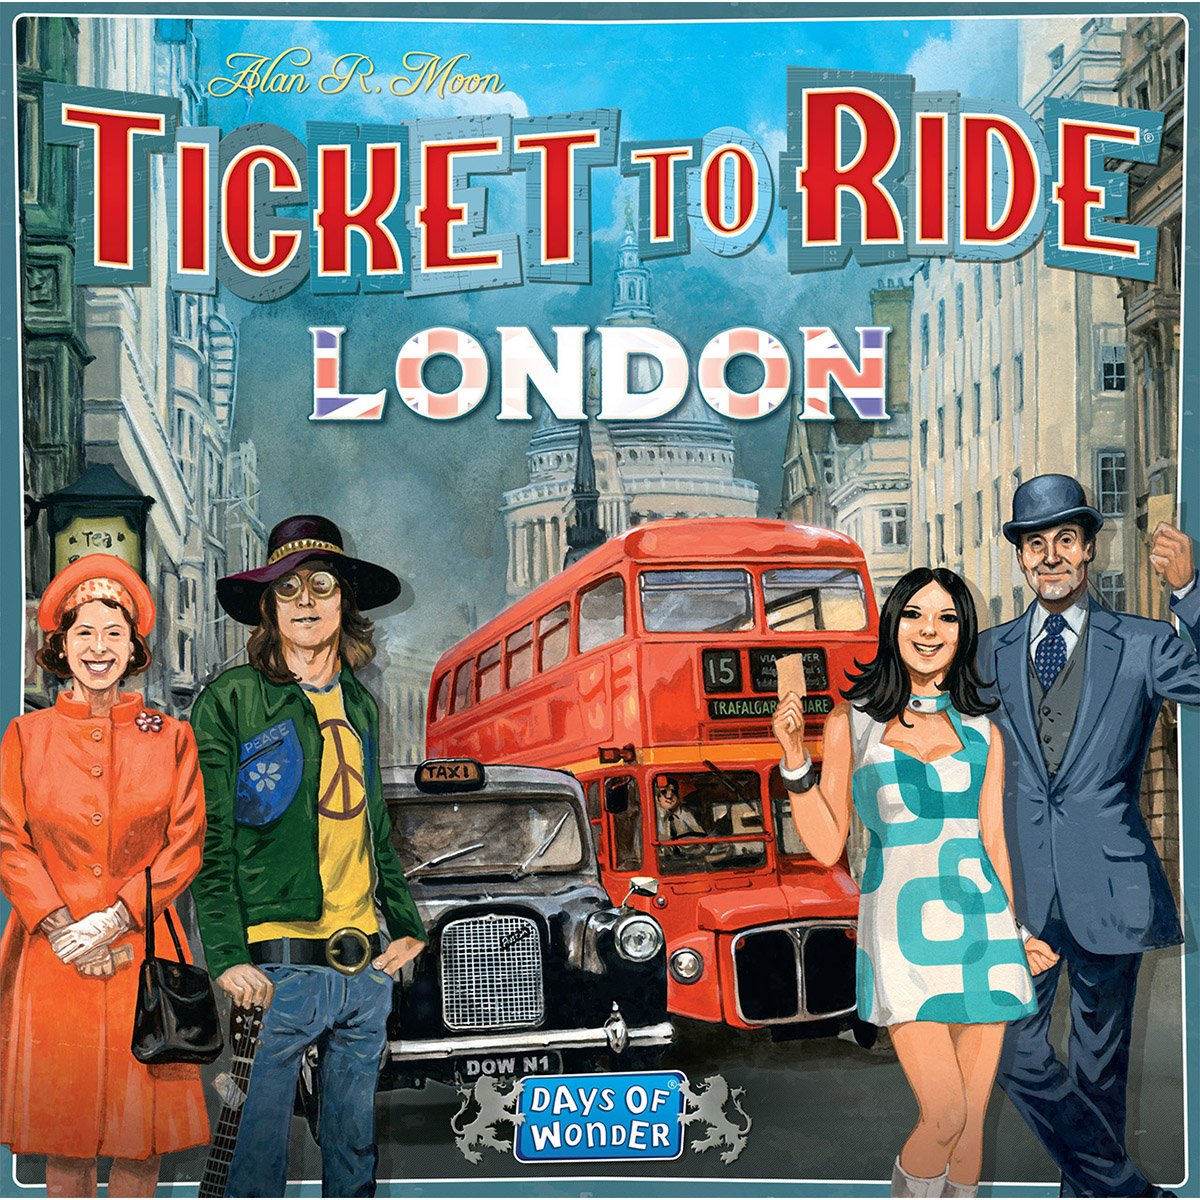 Joc de societate Ticket To Ride, Londra